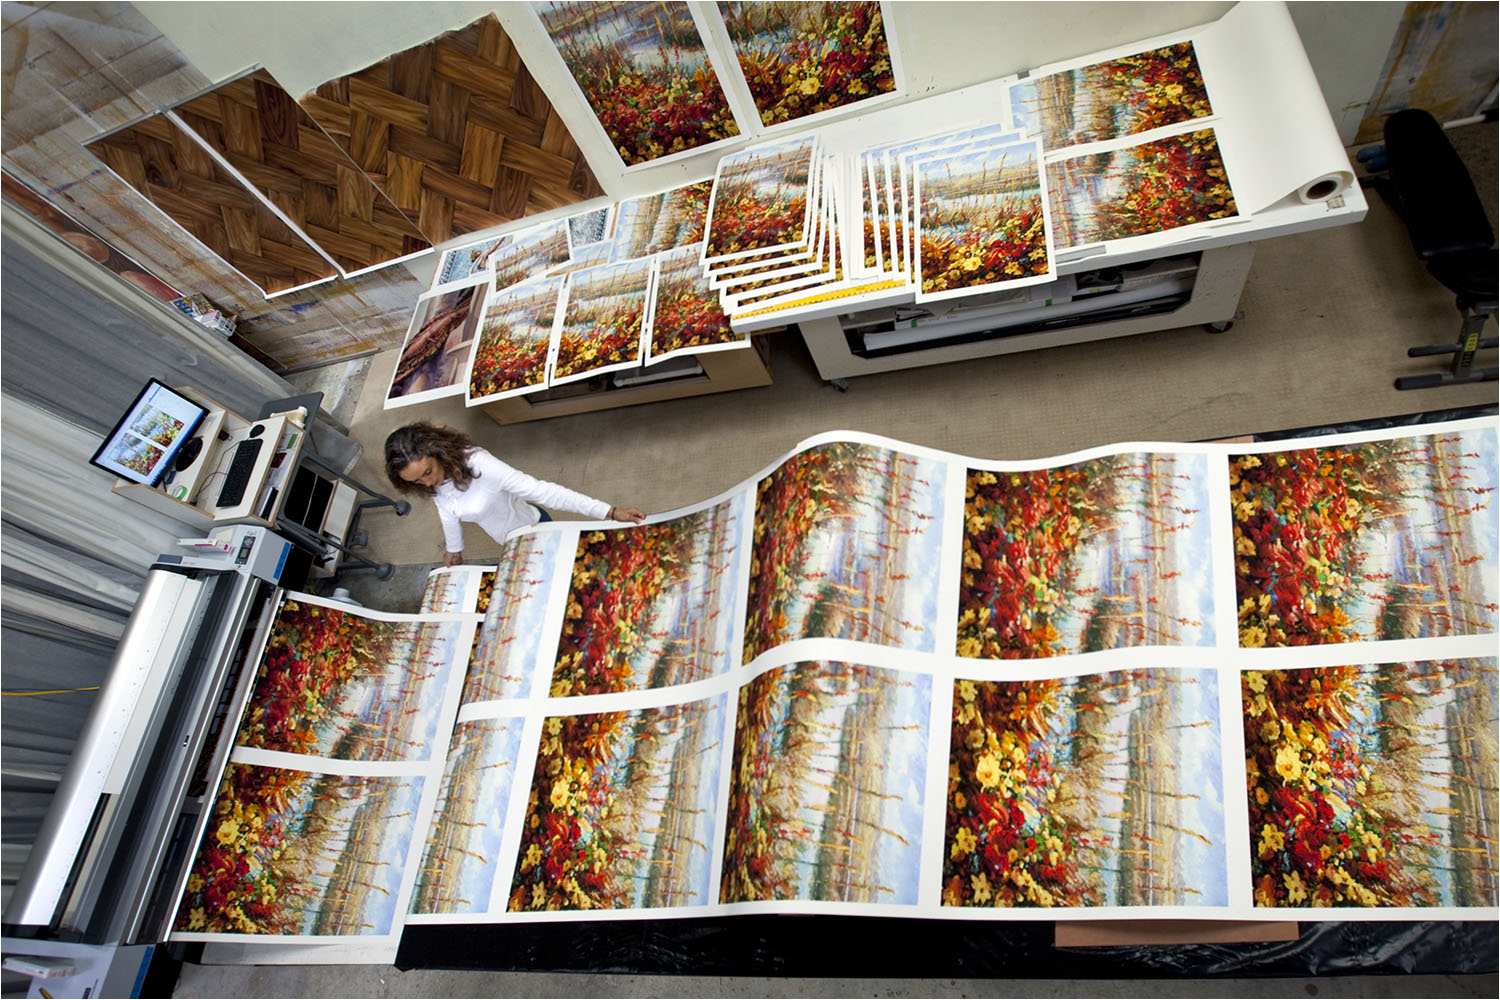 The highest quality fine art prints.  This is a limited edition produced with pigmented inks on archival fine art paper.